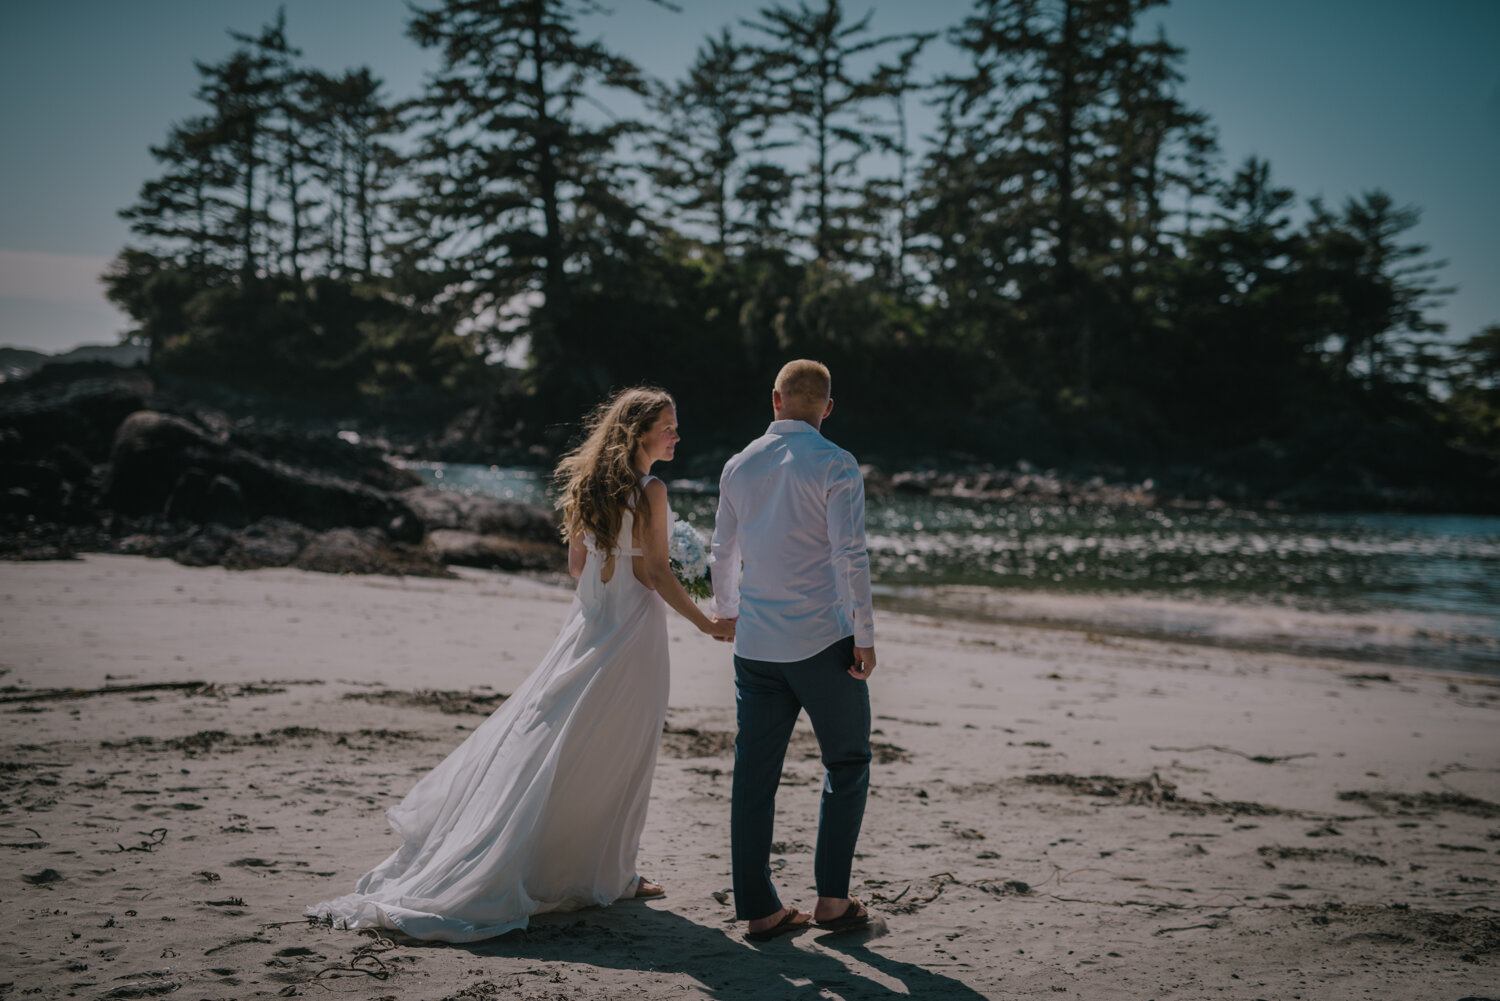 Ucluelet-Wya-Point-Wedding-Owen-Imaging-28.jpg